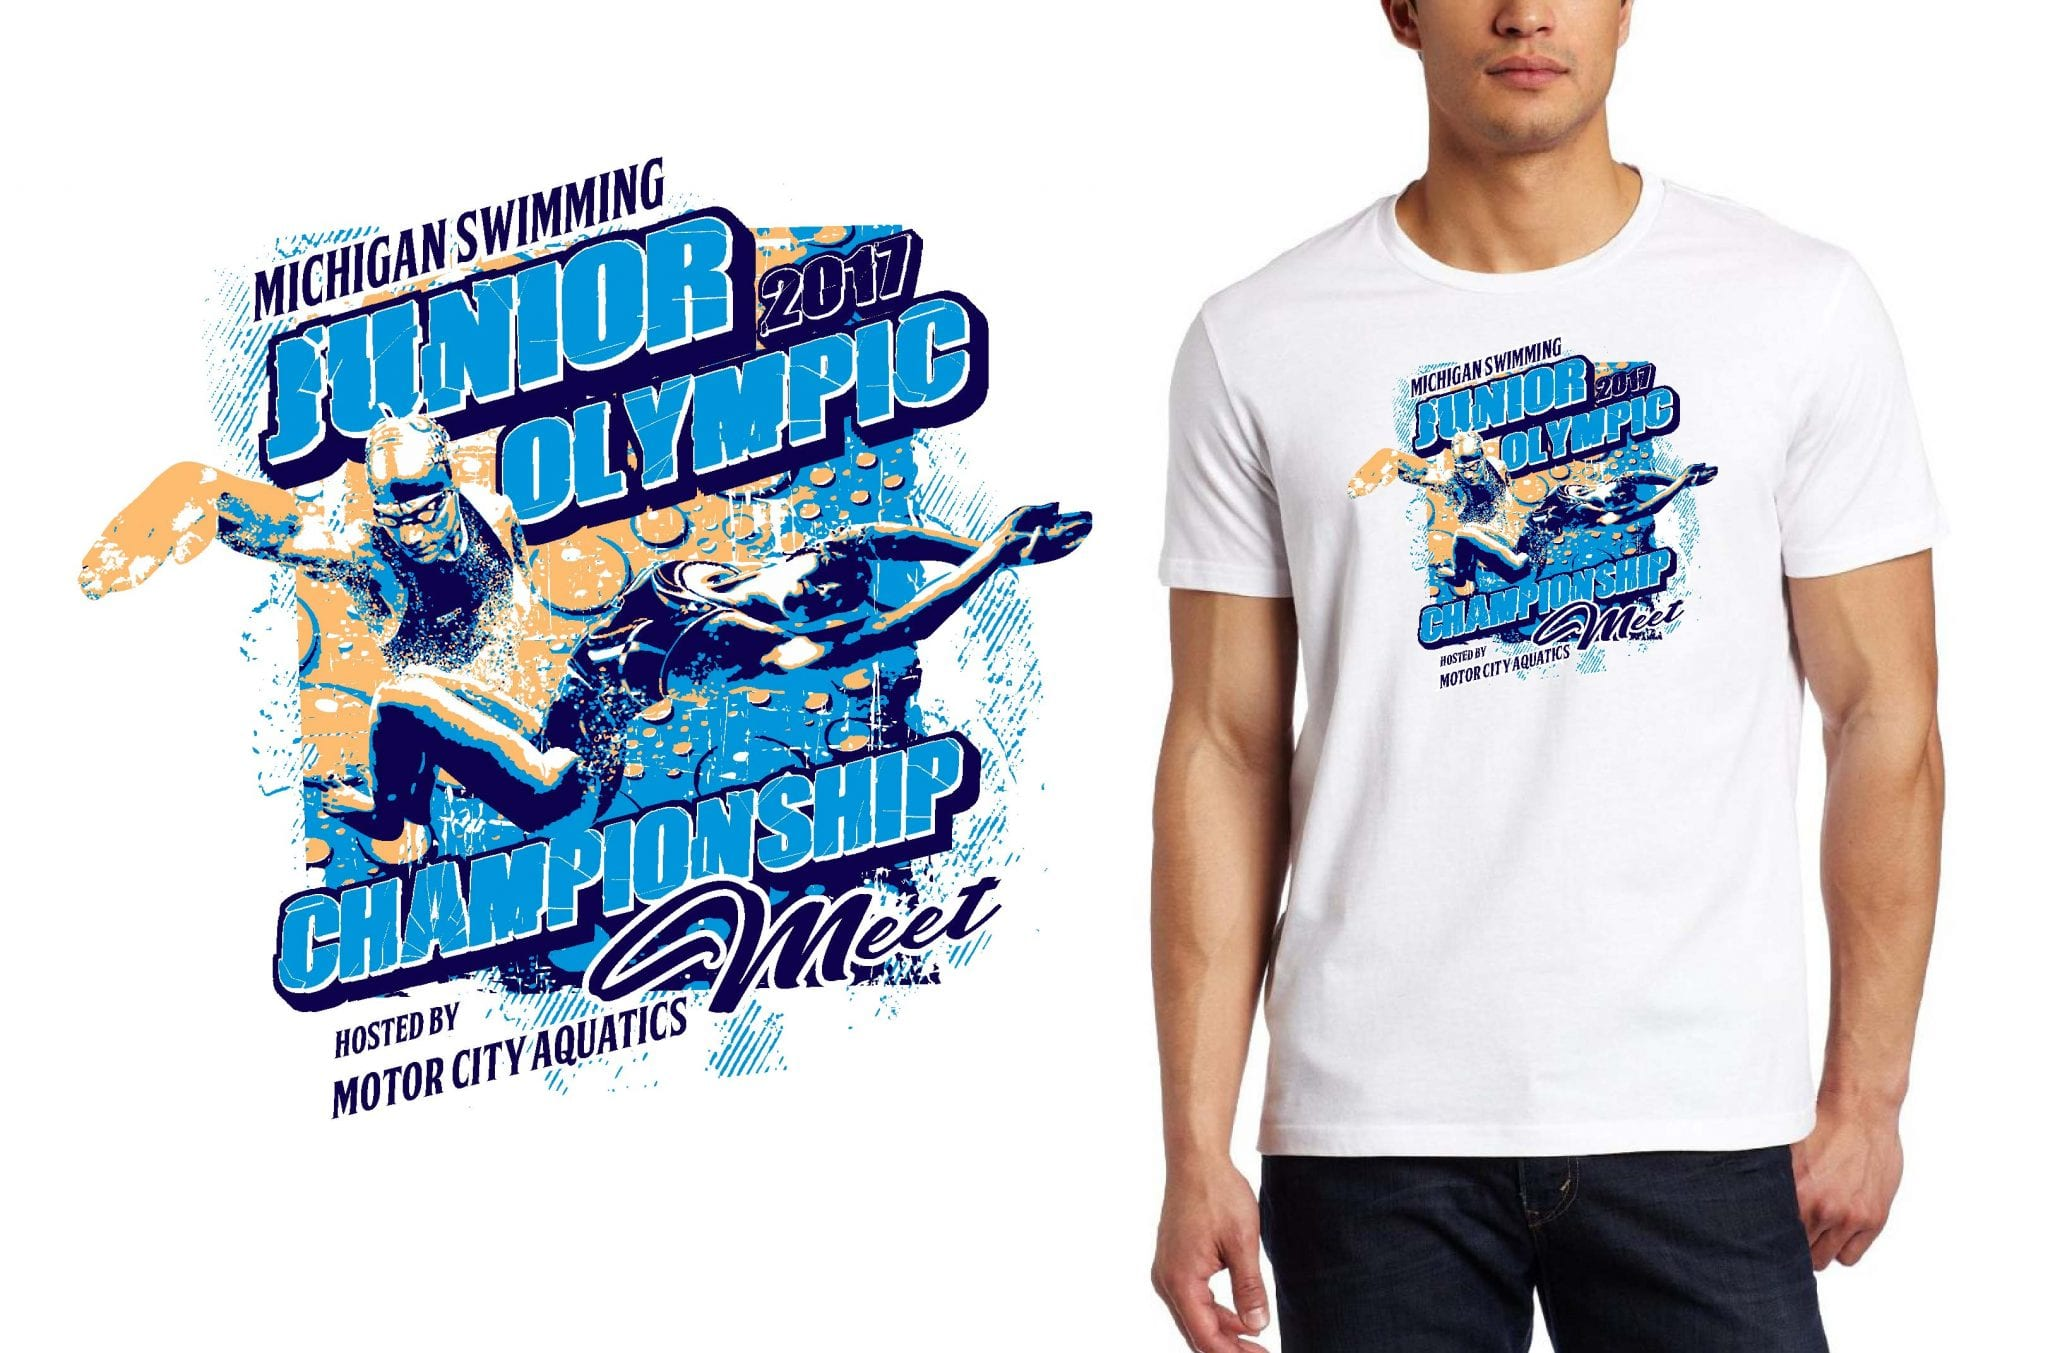 swimming TSHIRT LOGO DESIGN Junior-Olympic-Championship-Meet UrArtStudio